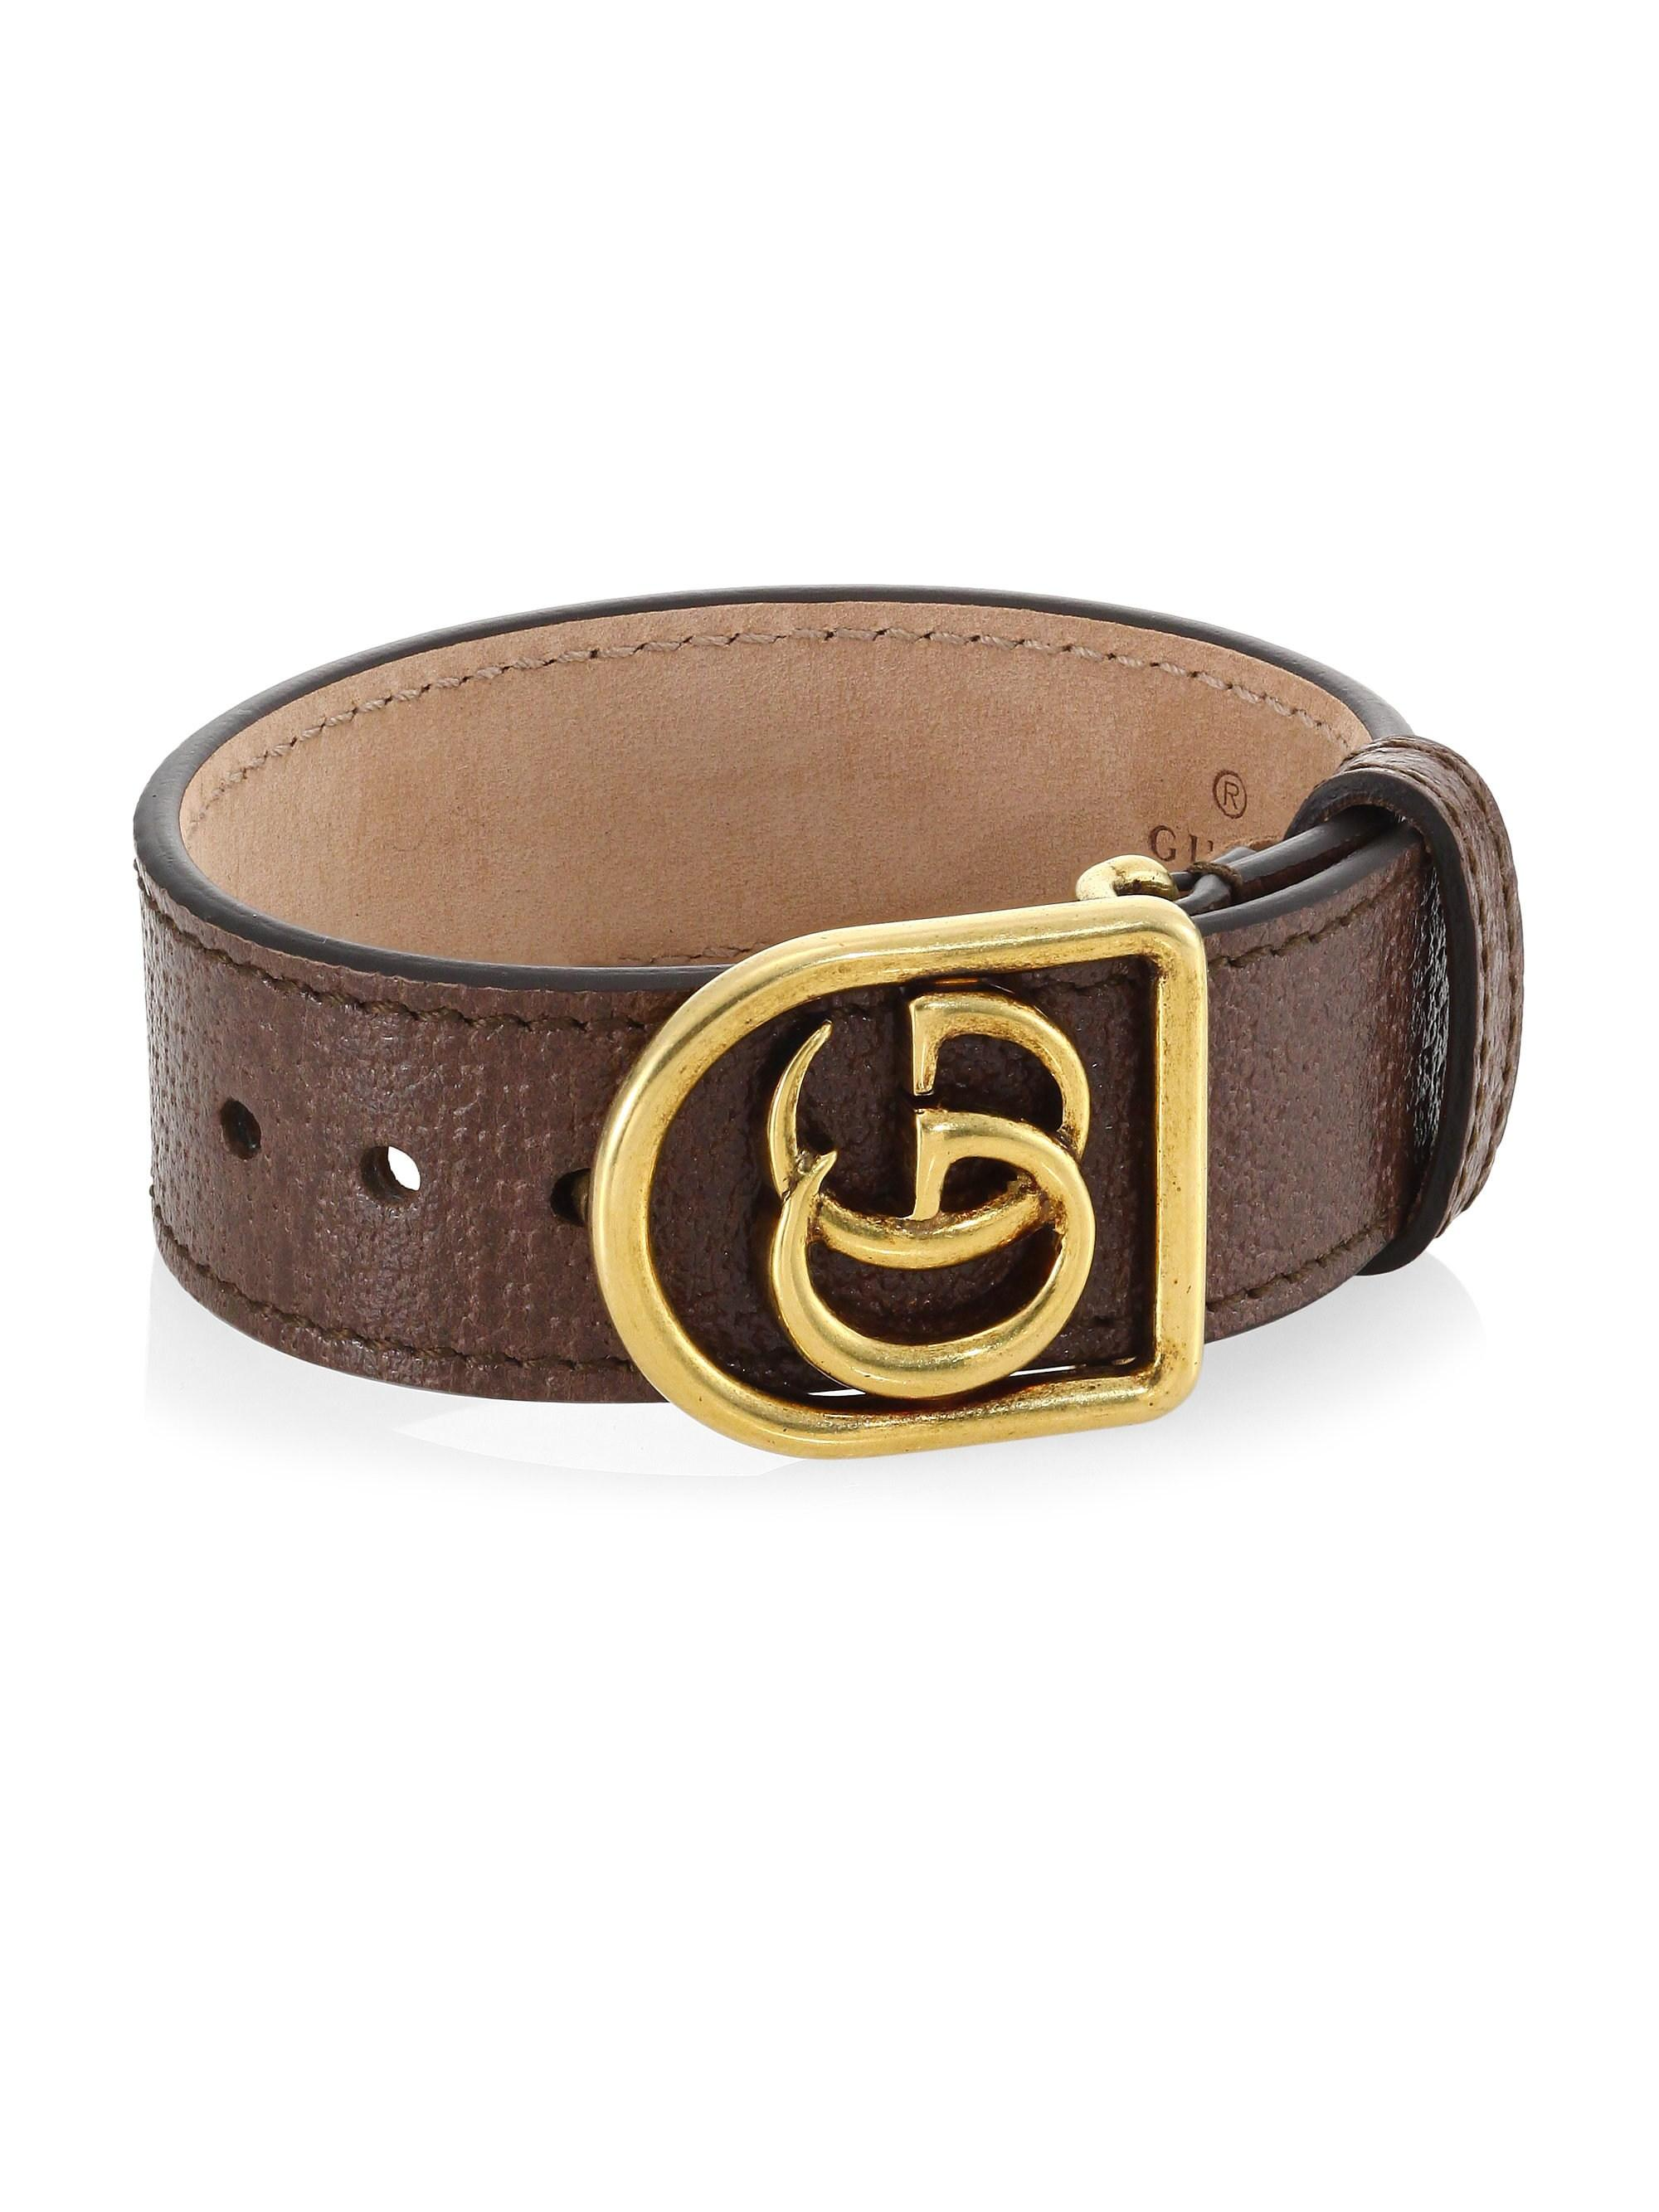 93aa47ba4c4 Lyst - Gucci Marmont Double G Leather Bracelet in Brown for Men